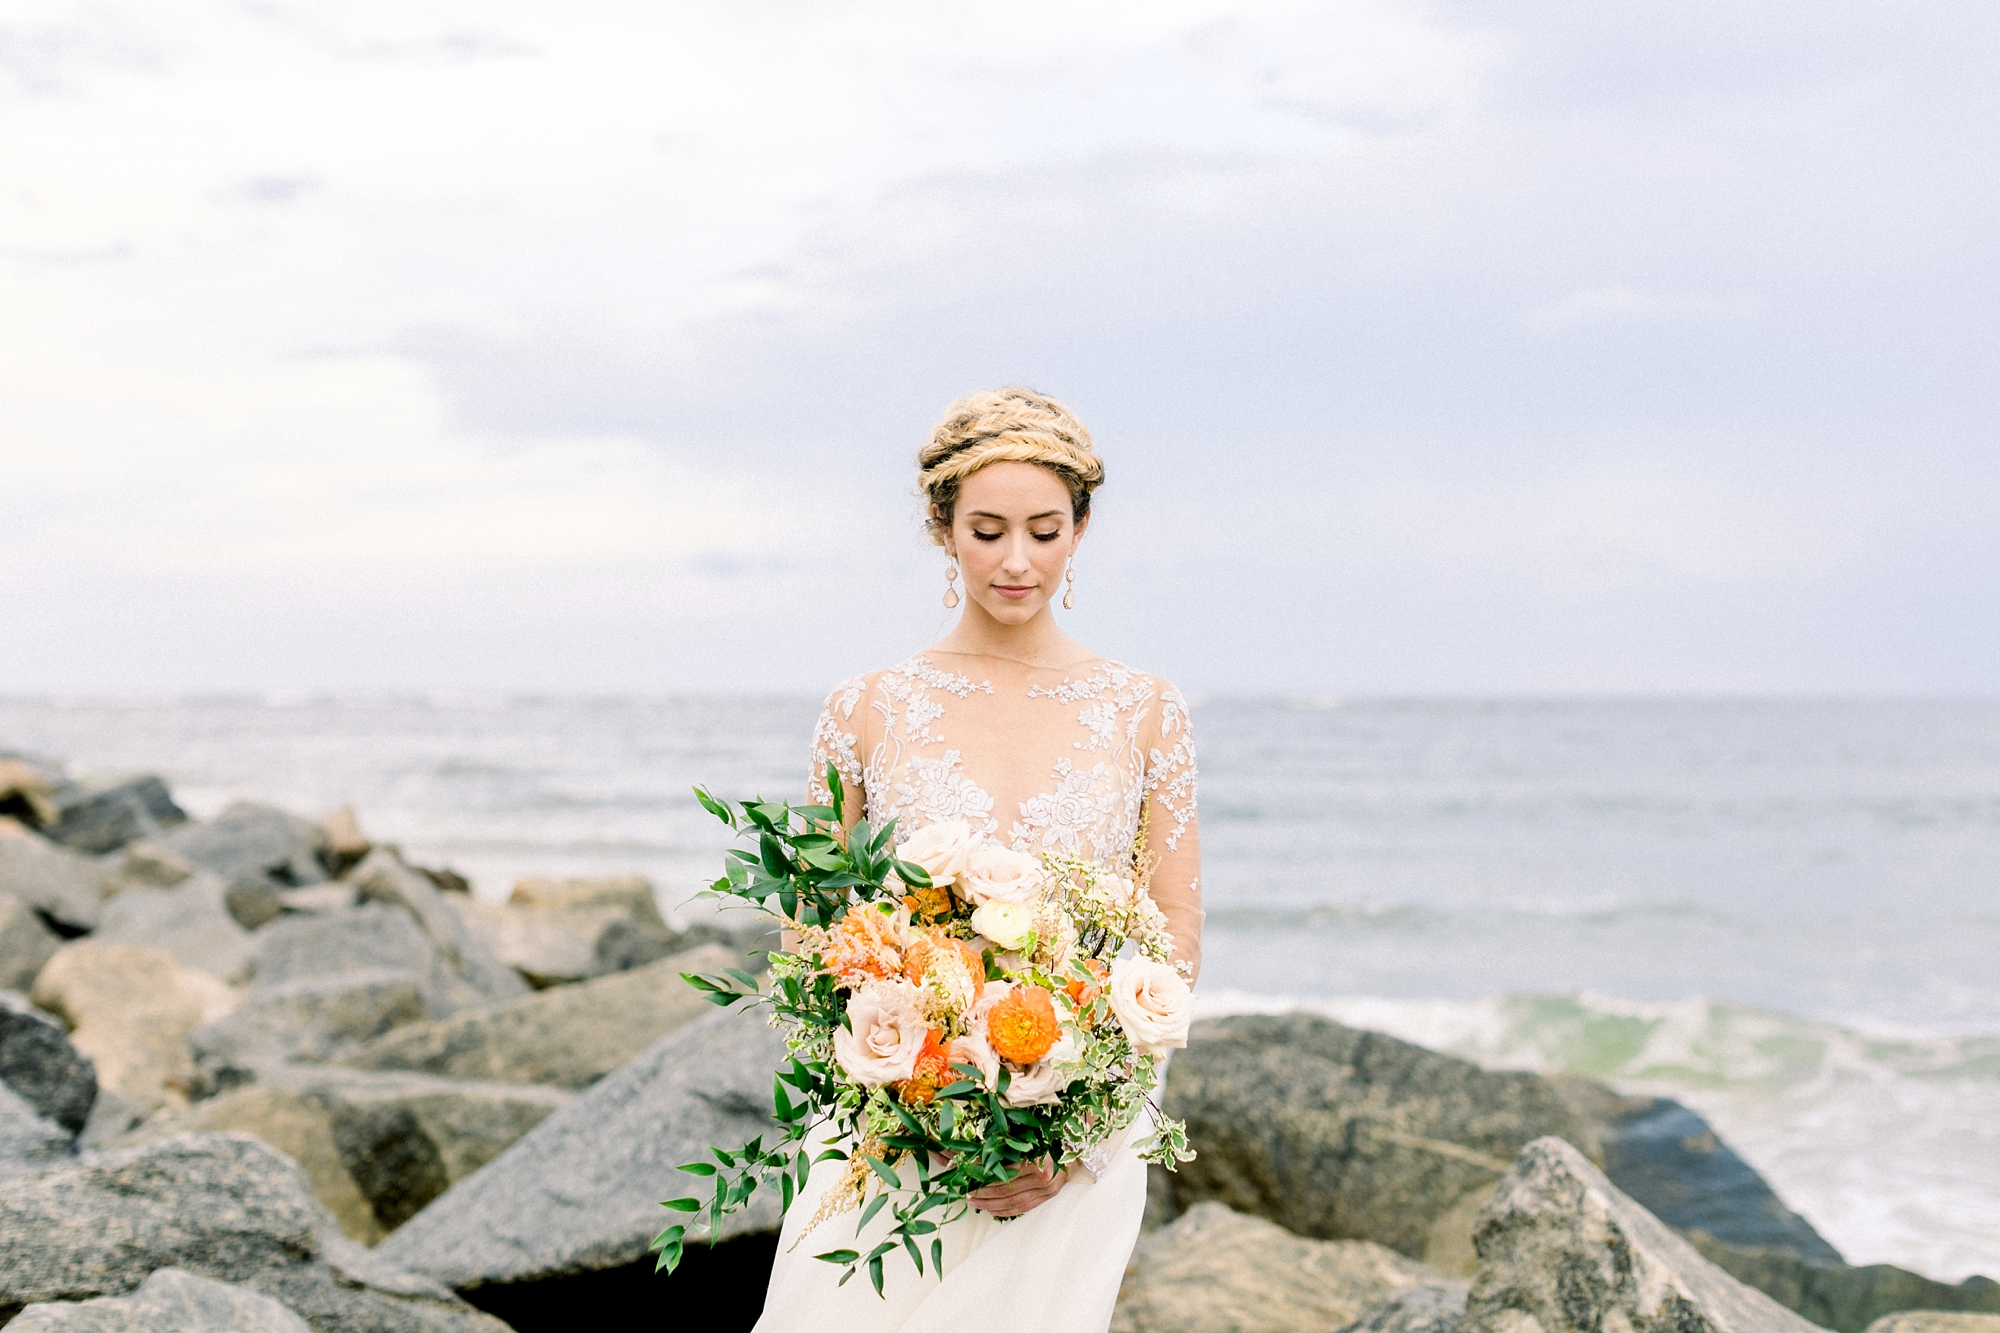 Natalie Broach Photography | Vilano Beach Photoshoot | St. Augustine Wedding Photographer | Bridal Photoshoot | Jacksonville Wedding Photographer | Fine Art Wedding Photographer | fall color bouquet